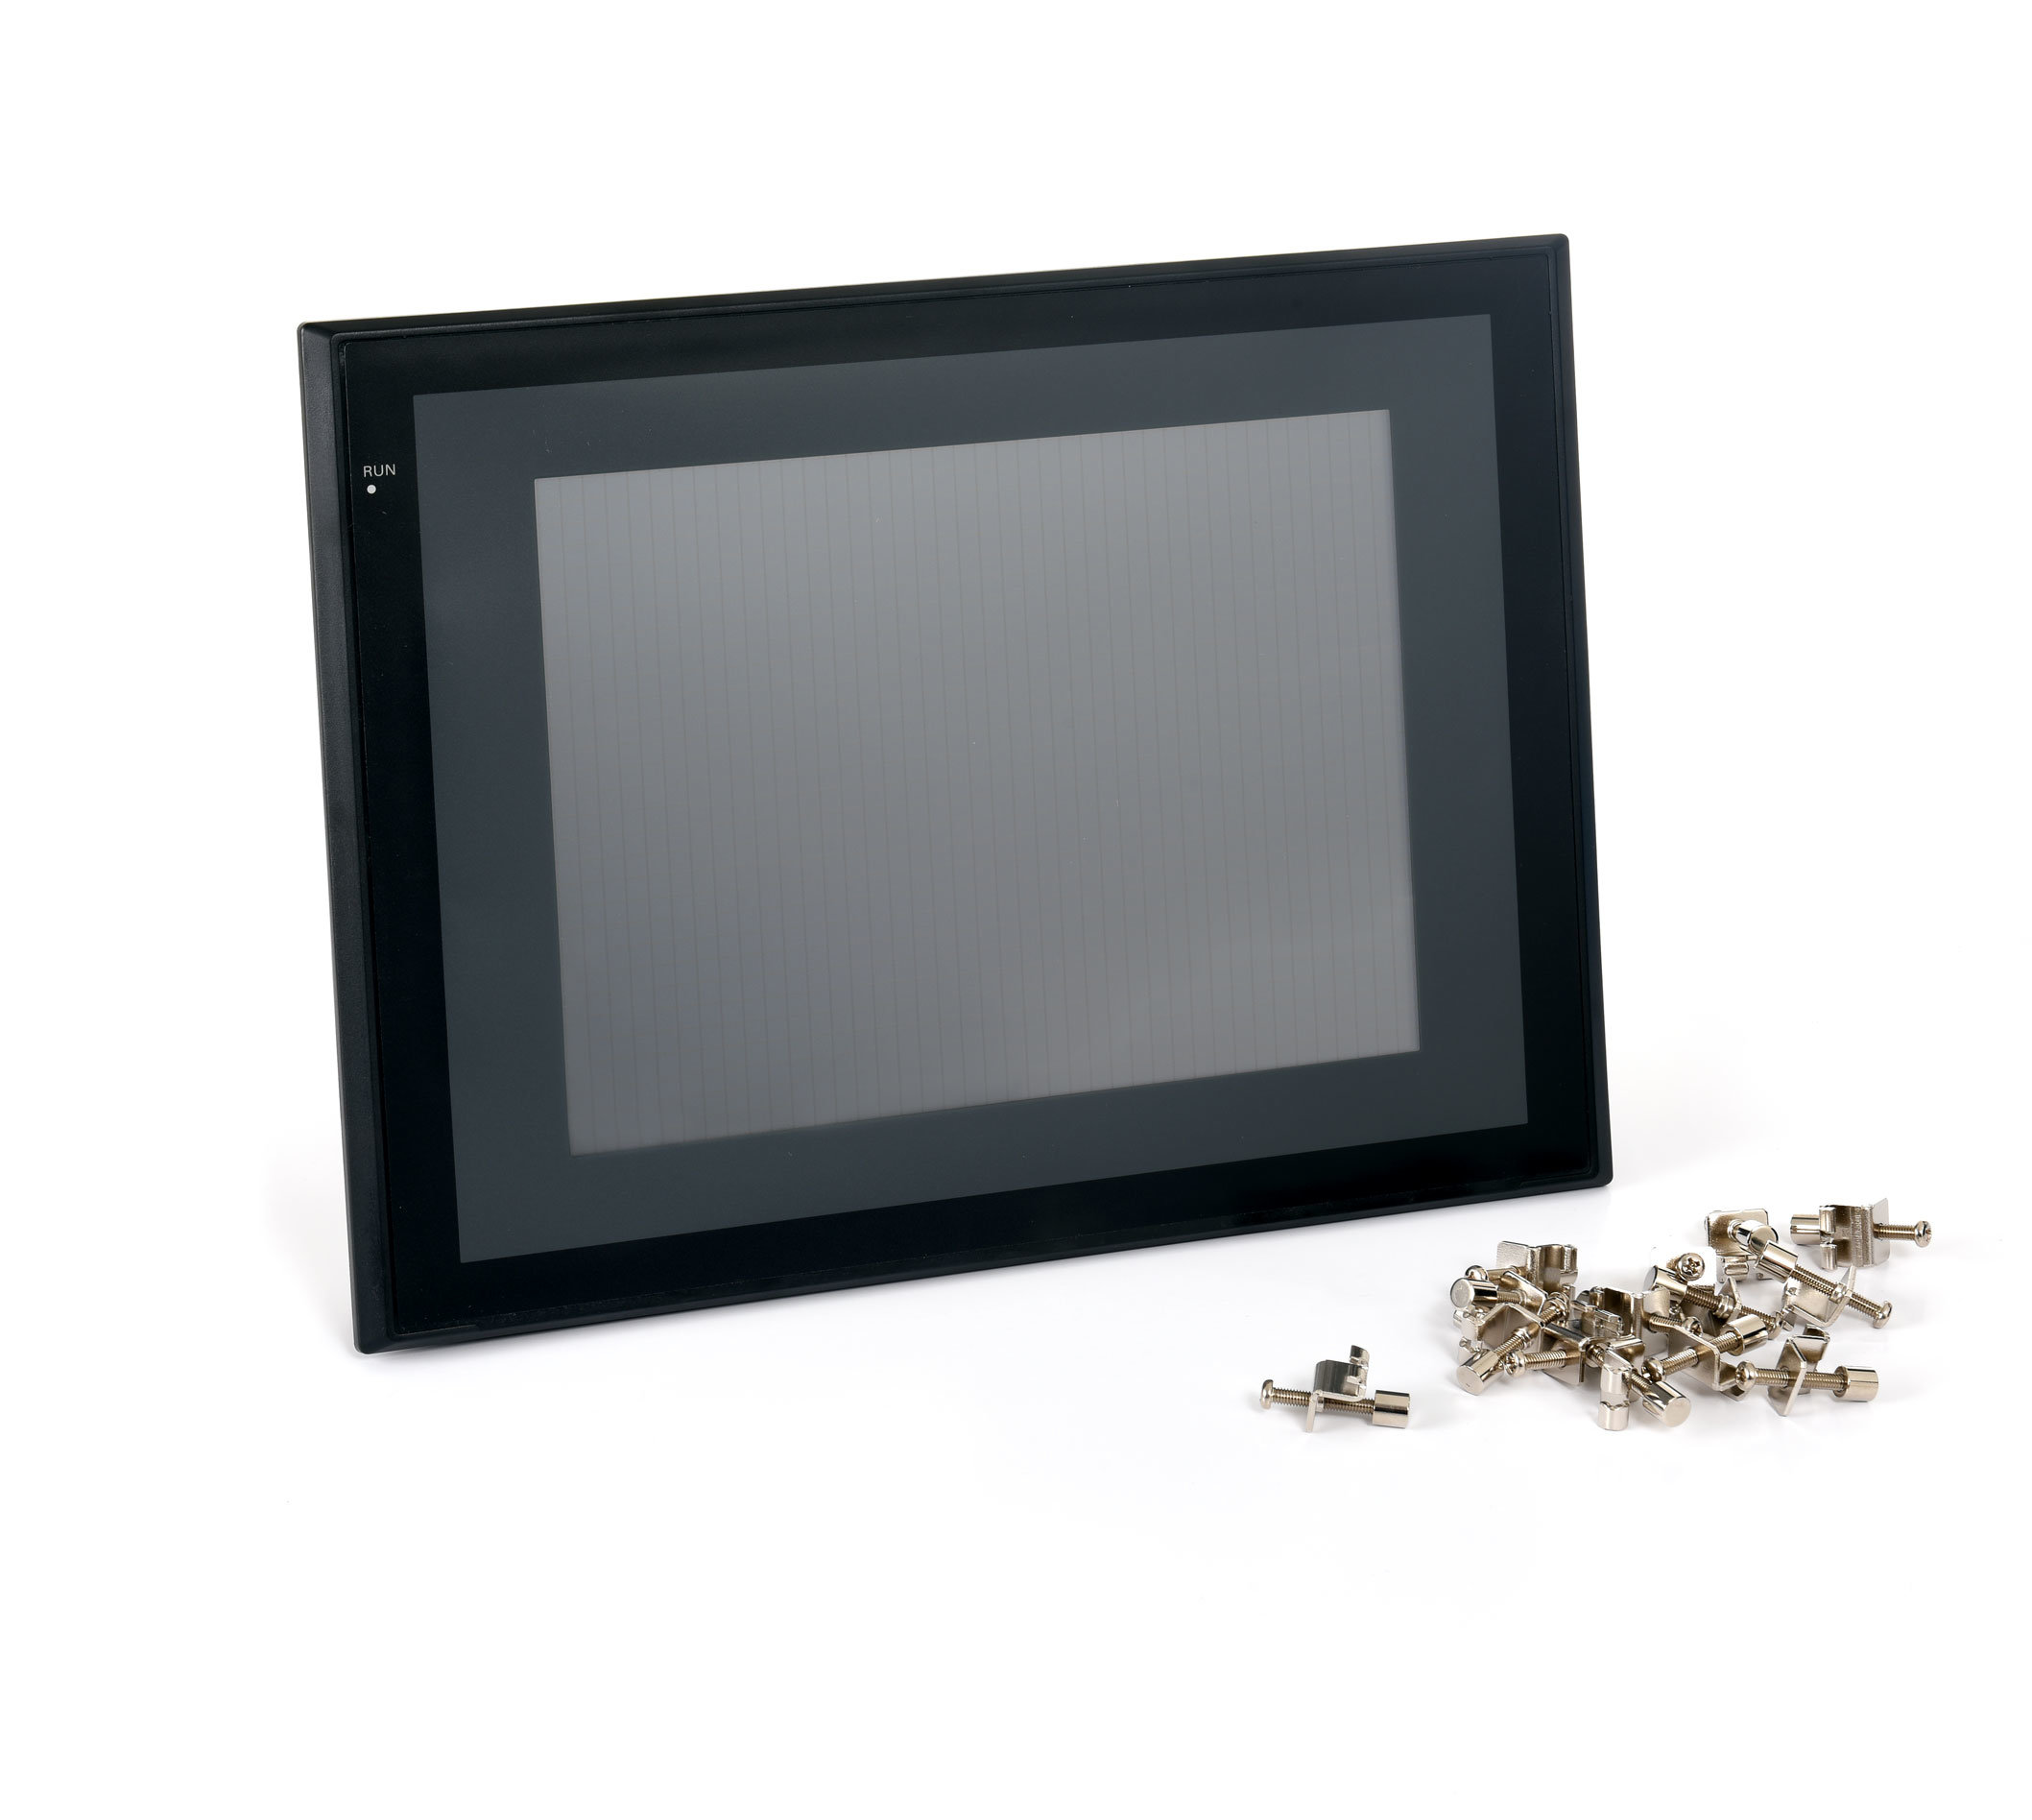 Touch screen uv relining touch screen for uv relinings systems control unit jeuxipadfo Gallery